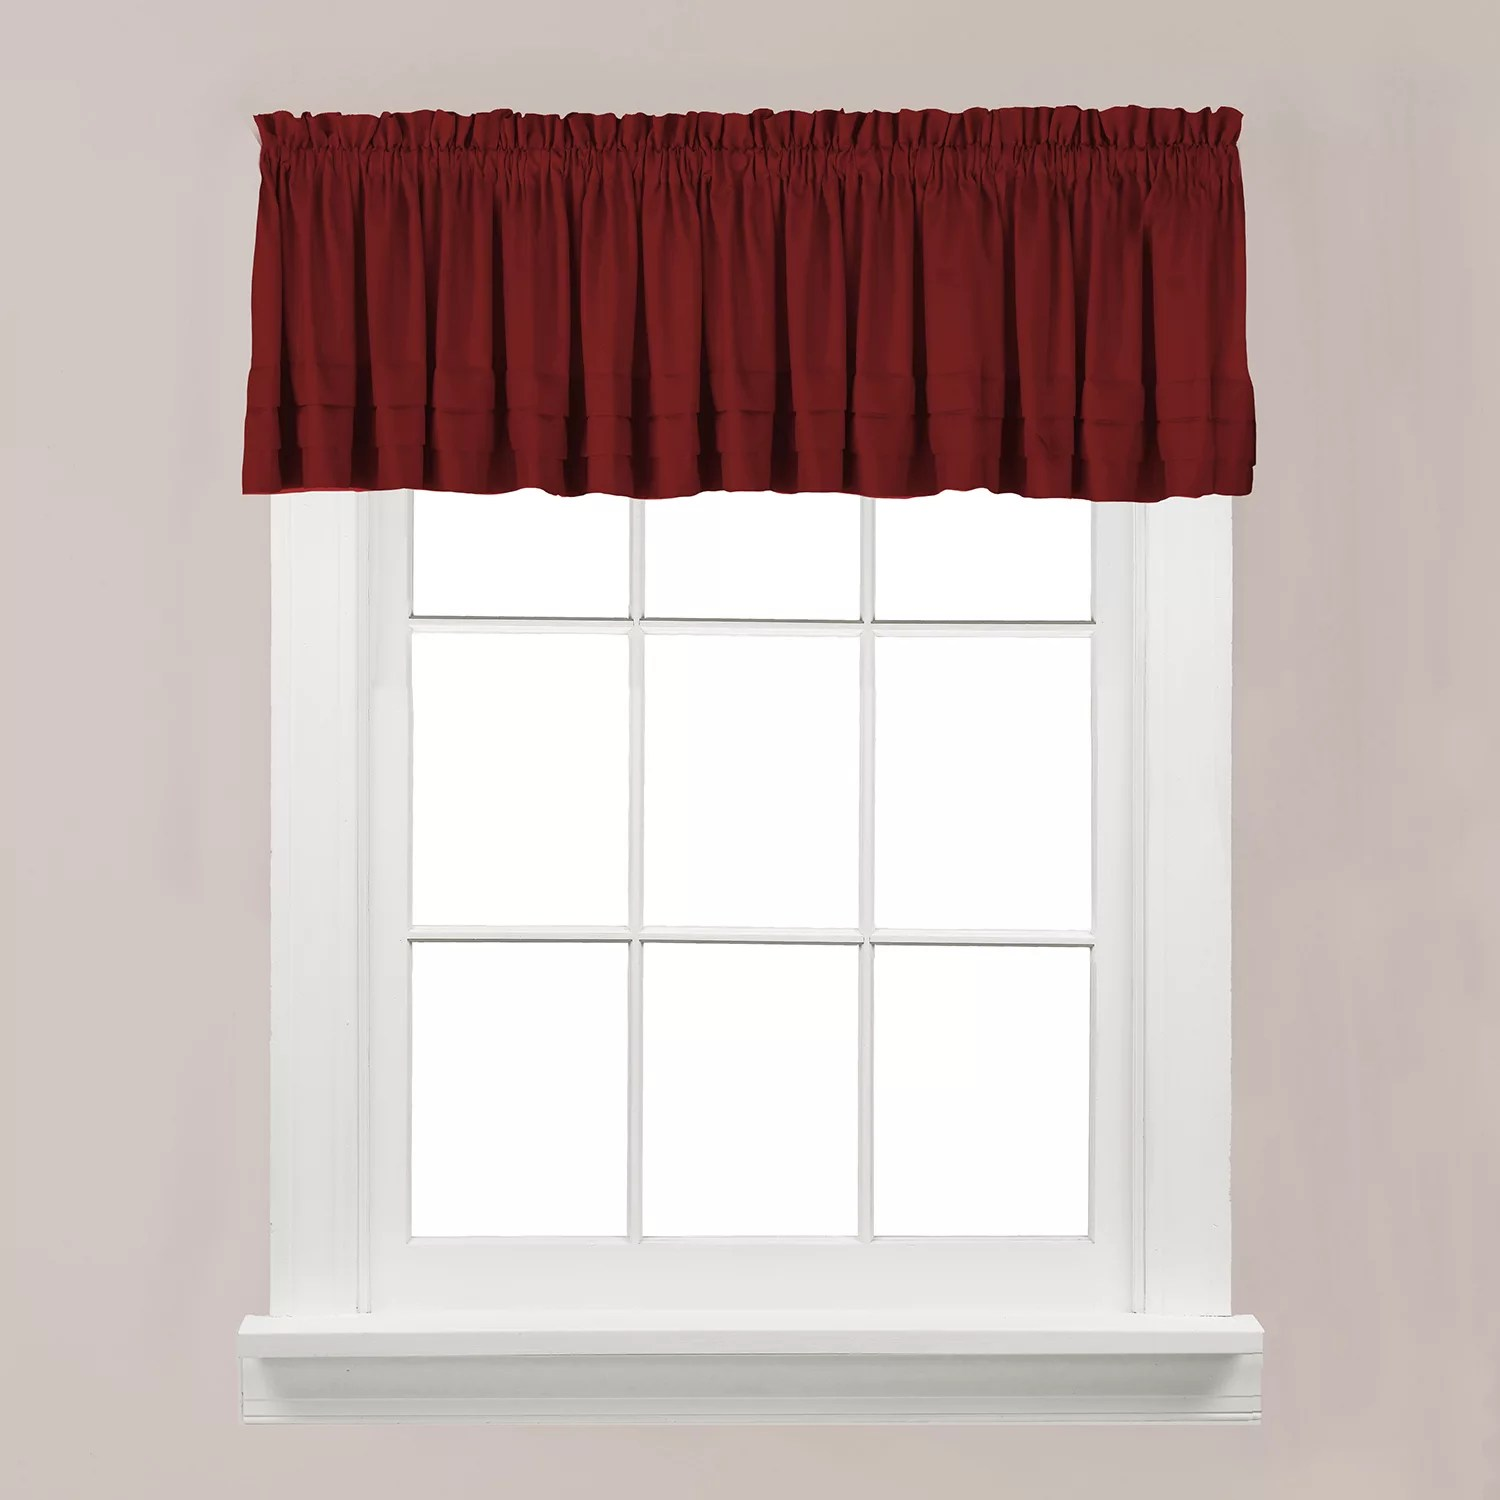 red kitchen valance aid cover valances window treatments kohl s saturday knight ltd holden